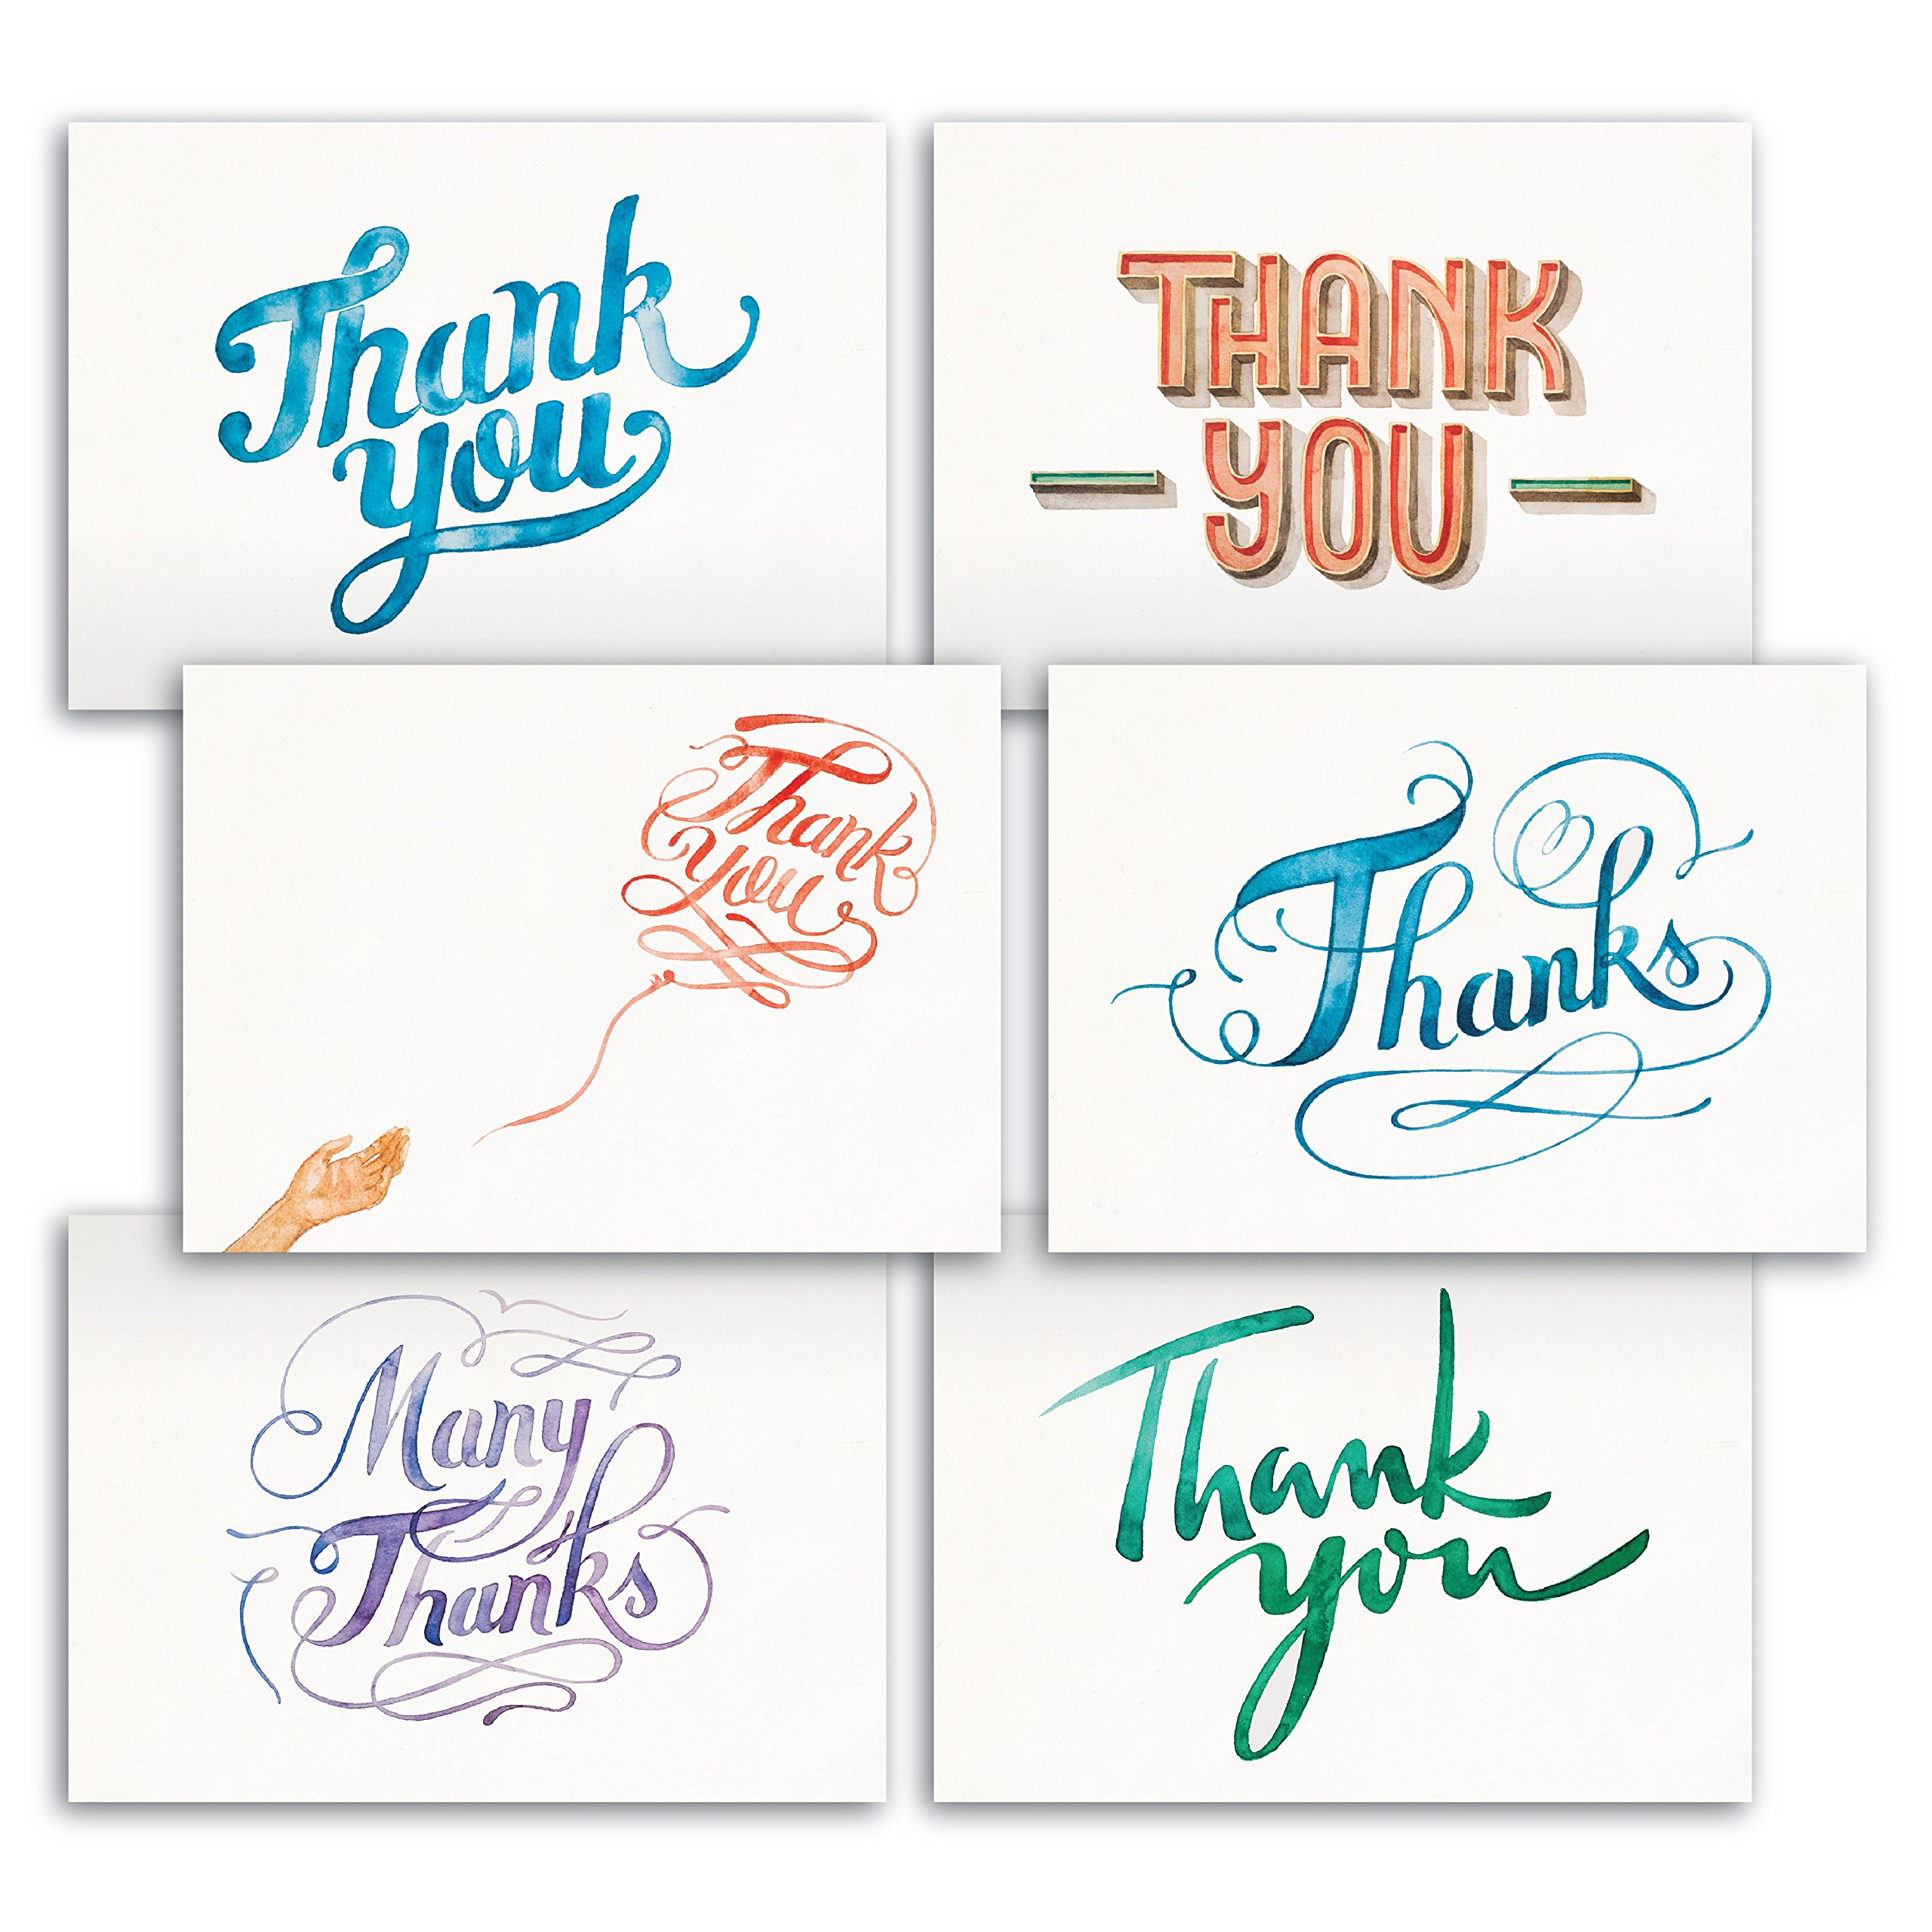 Hand Painted Watercolor Thank You Note Cards 48 Bulk - Like Handmade Cards Box Set - Contains Blank Cards with Envelopes - 6 Special Designs by Papertopia